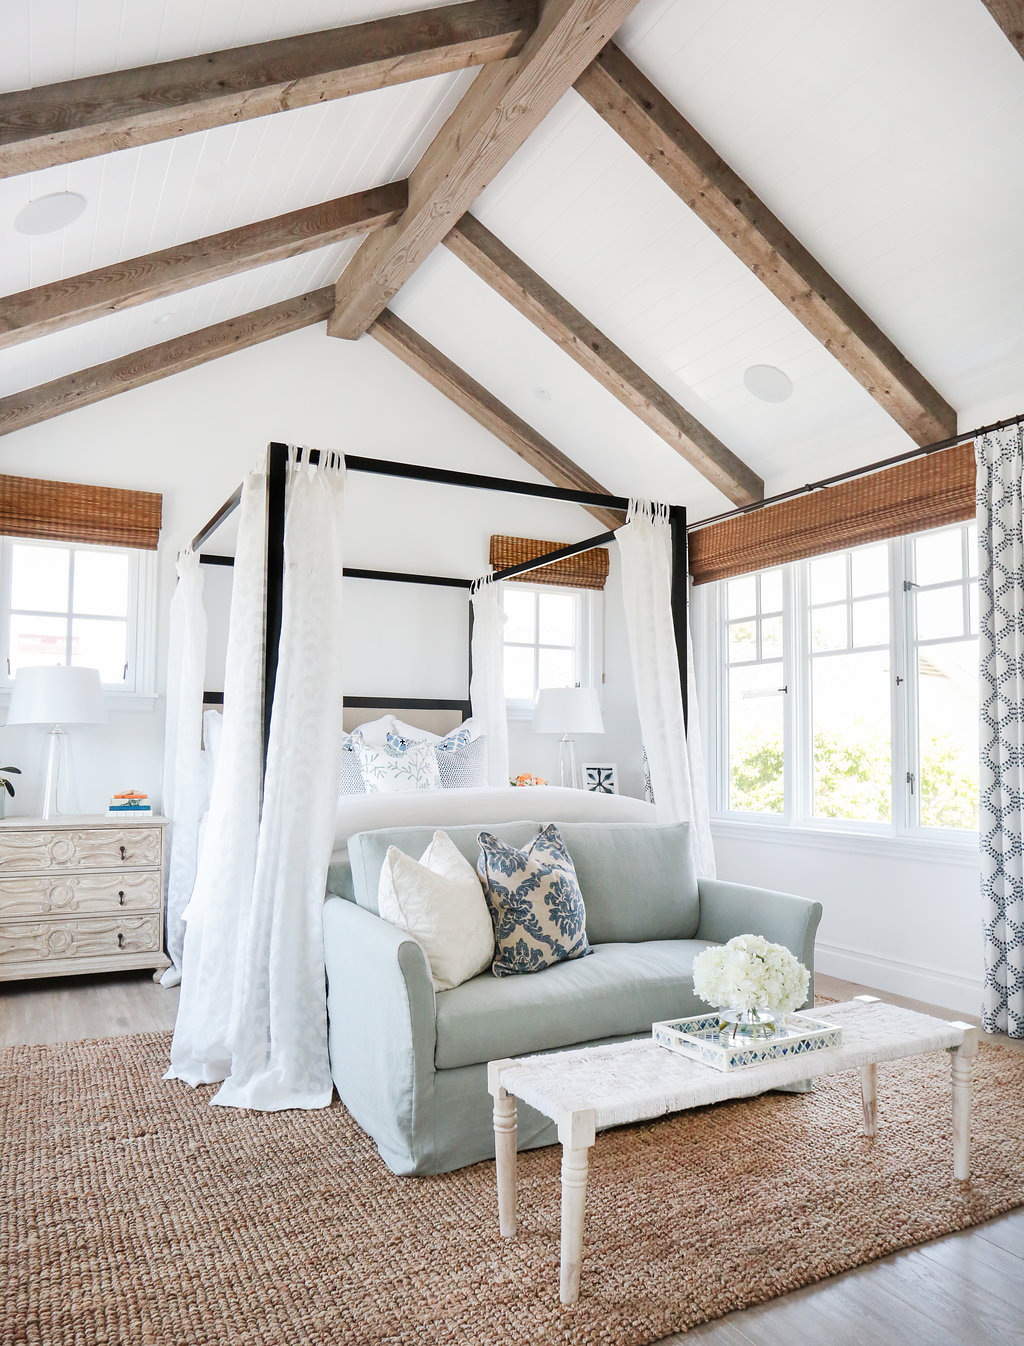 blackband_design_bayshores_master_bedroom_5